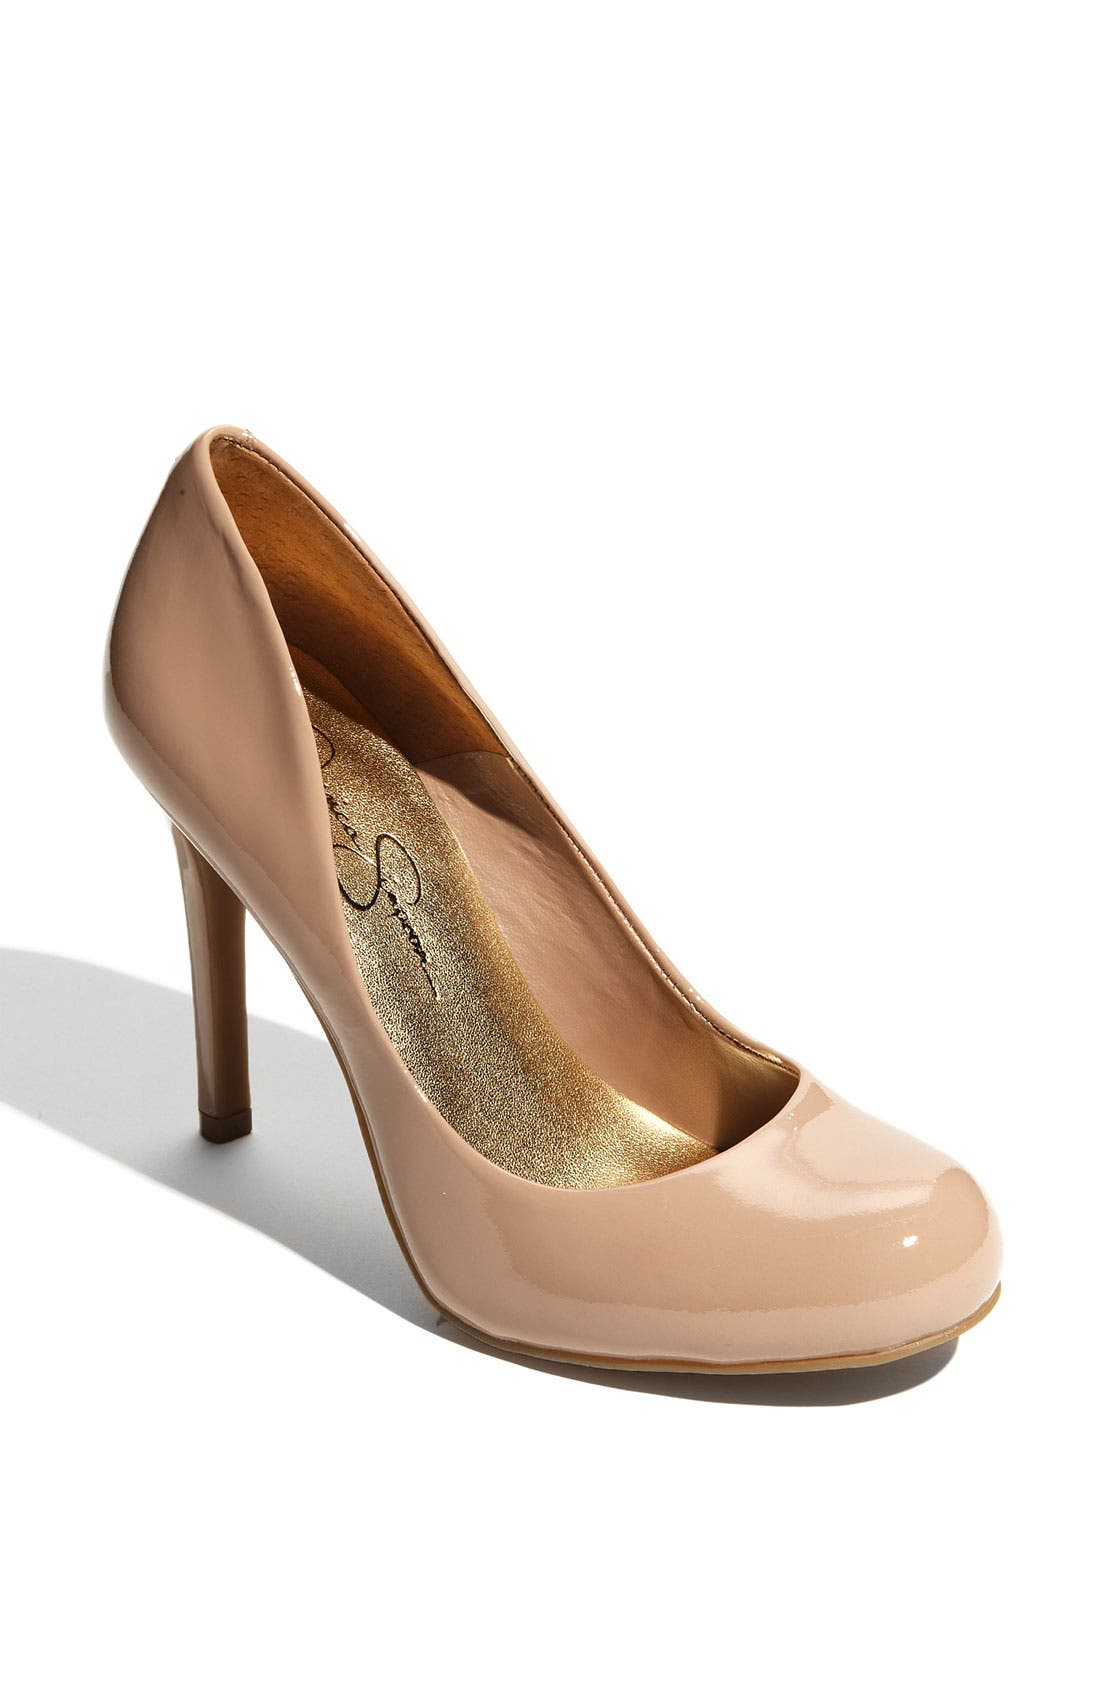 Alternate Image 1 Selected - Jessica Simpson 'Calie' Pump